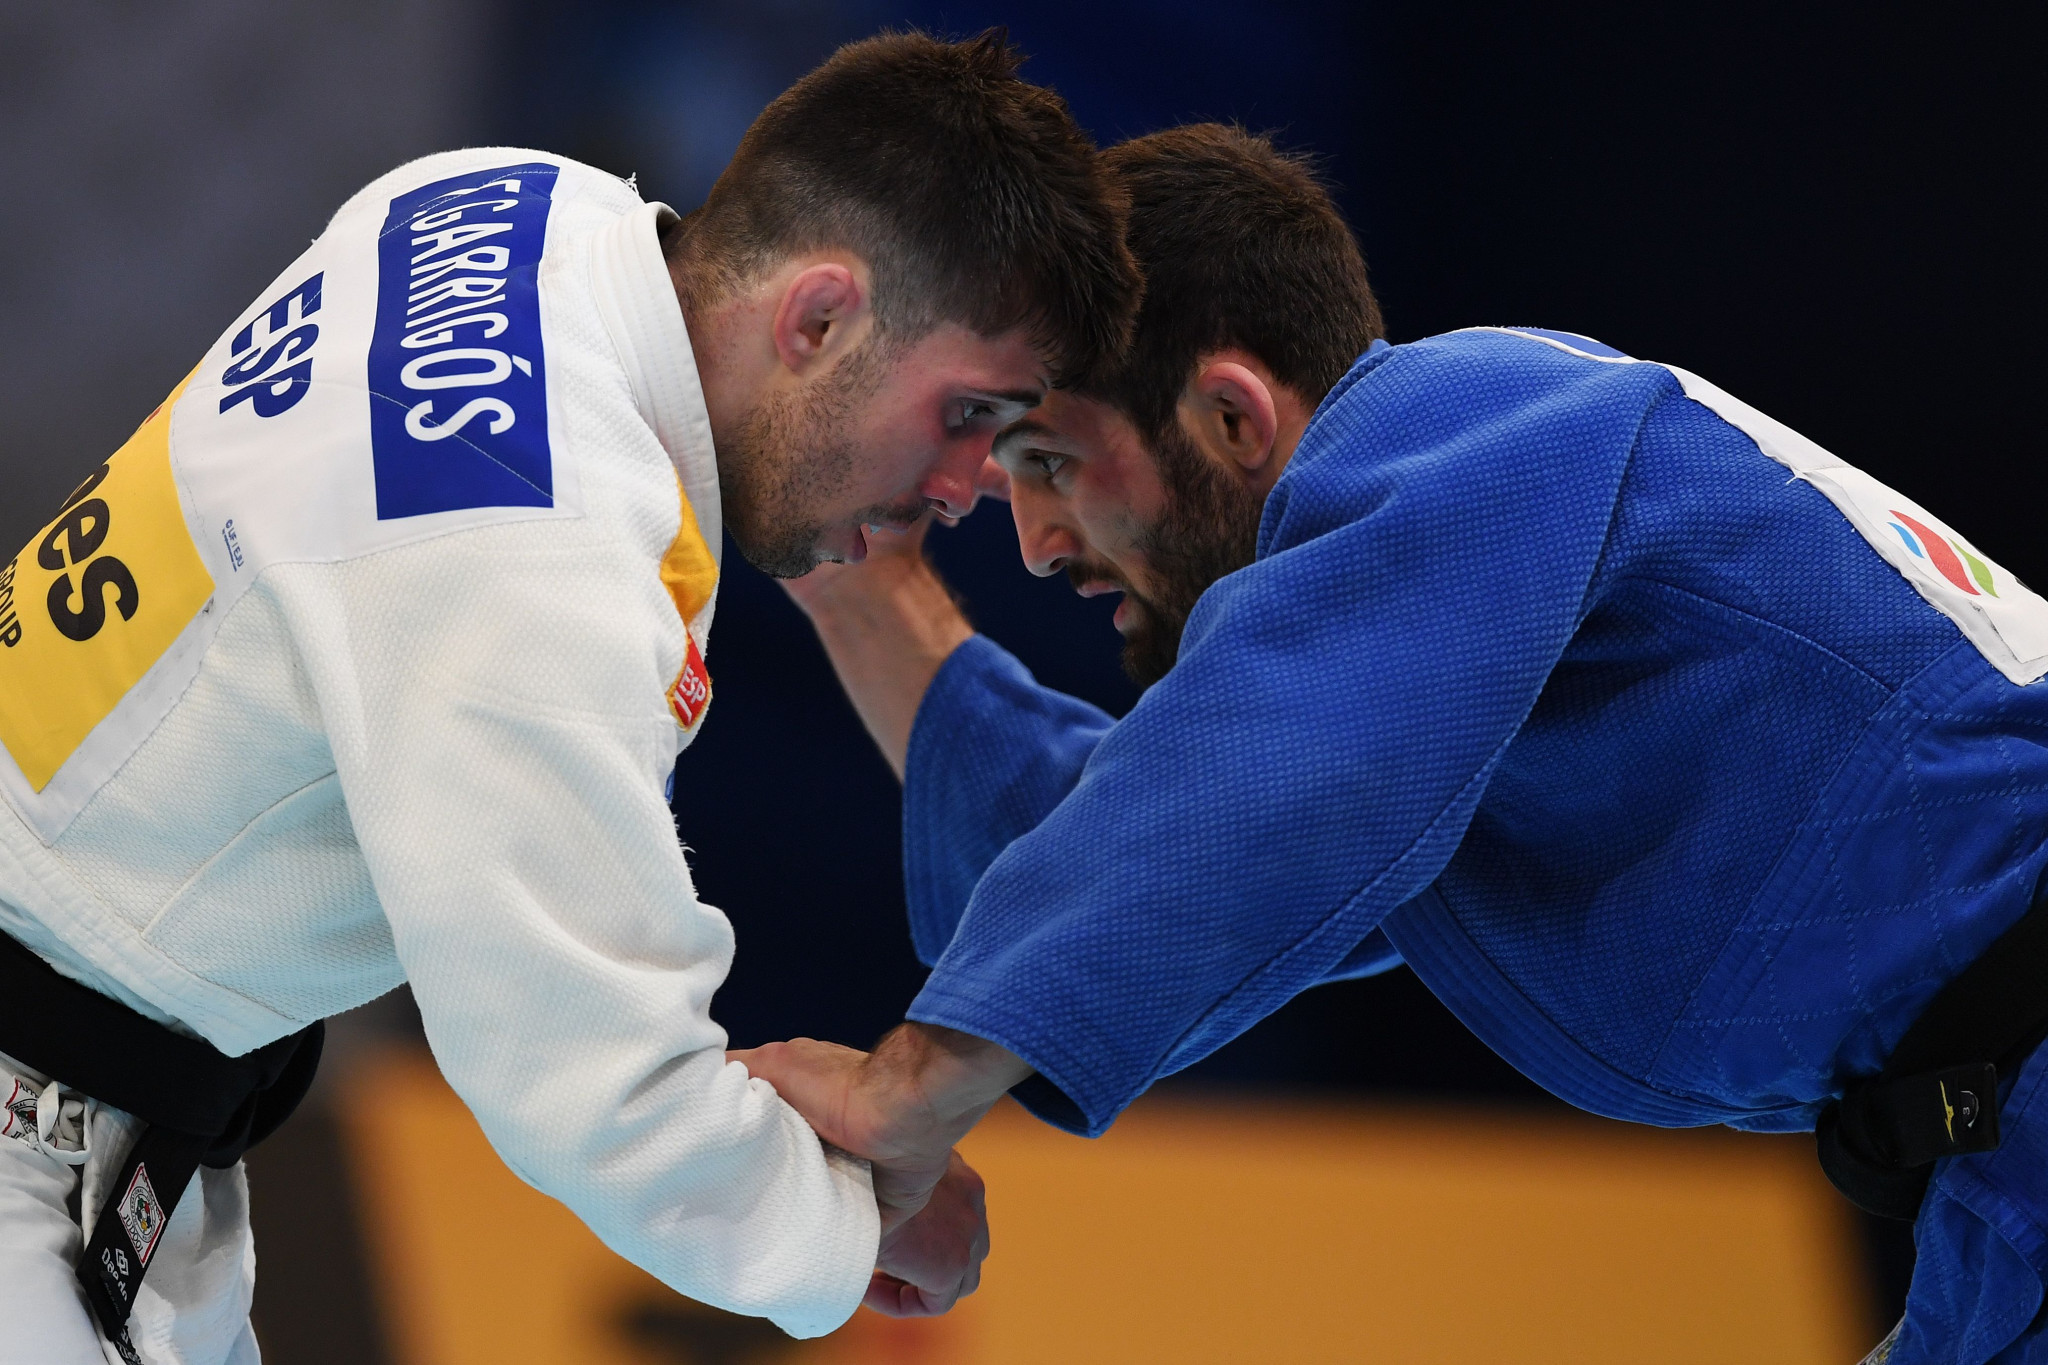 He faced Spain's Francisco Garrigos in round one in a repeat of the 2019 European Games final ©Getty Images